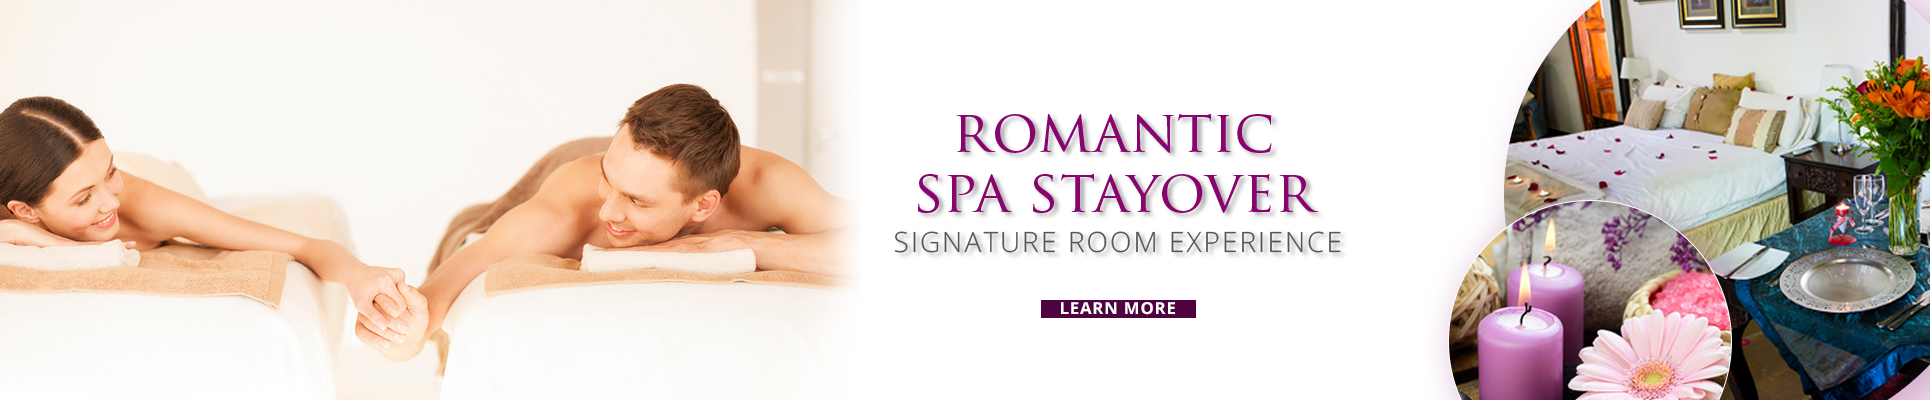 Spa Signature Room 2019